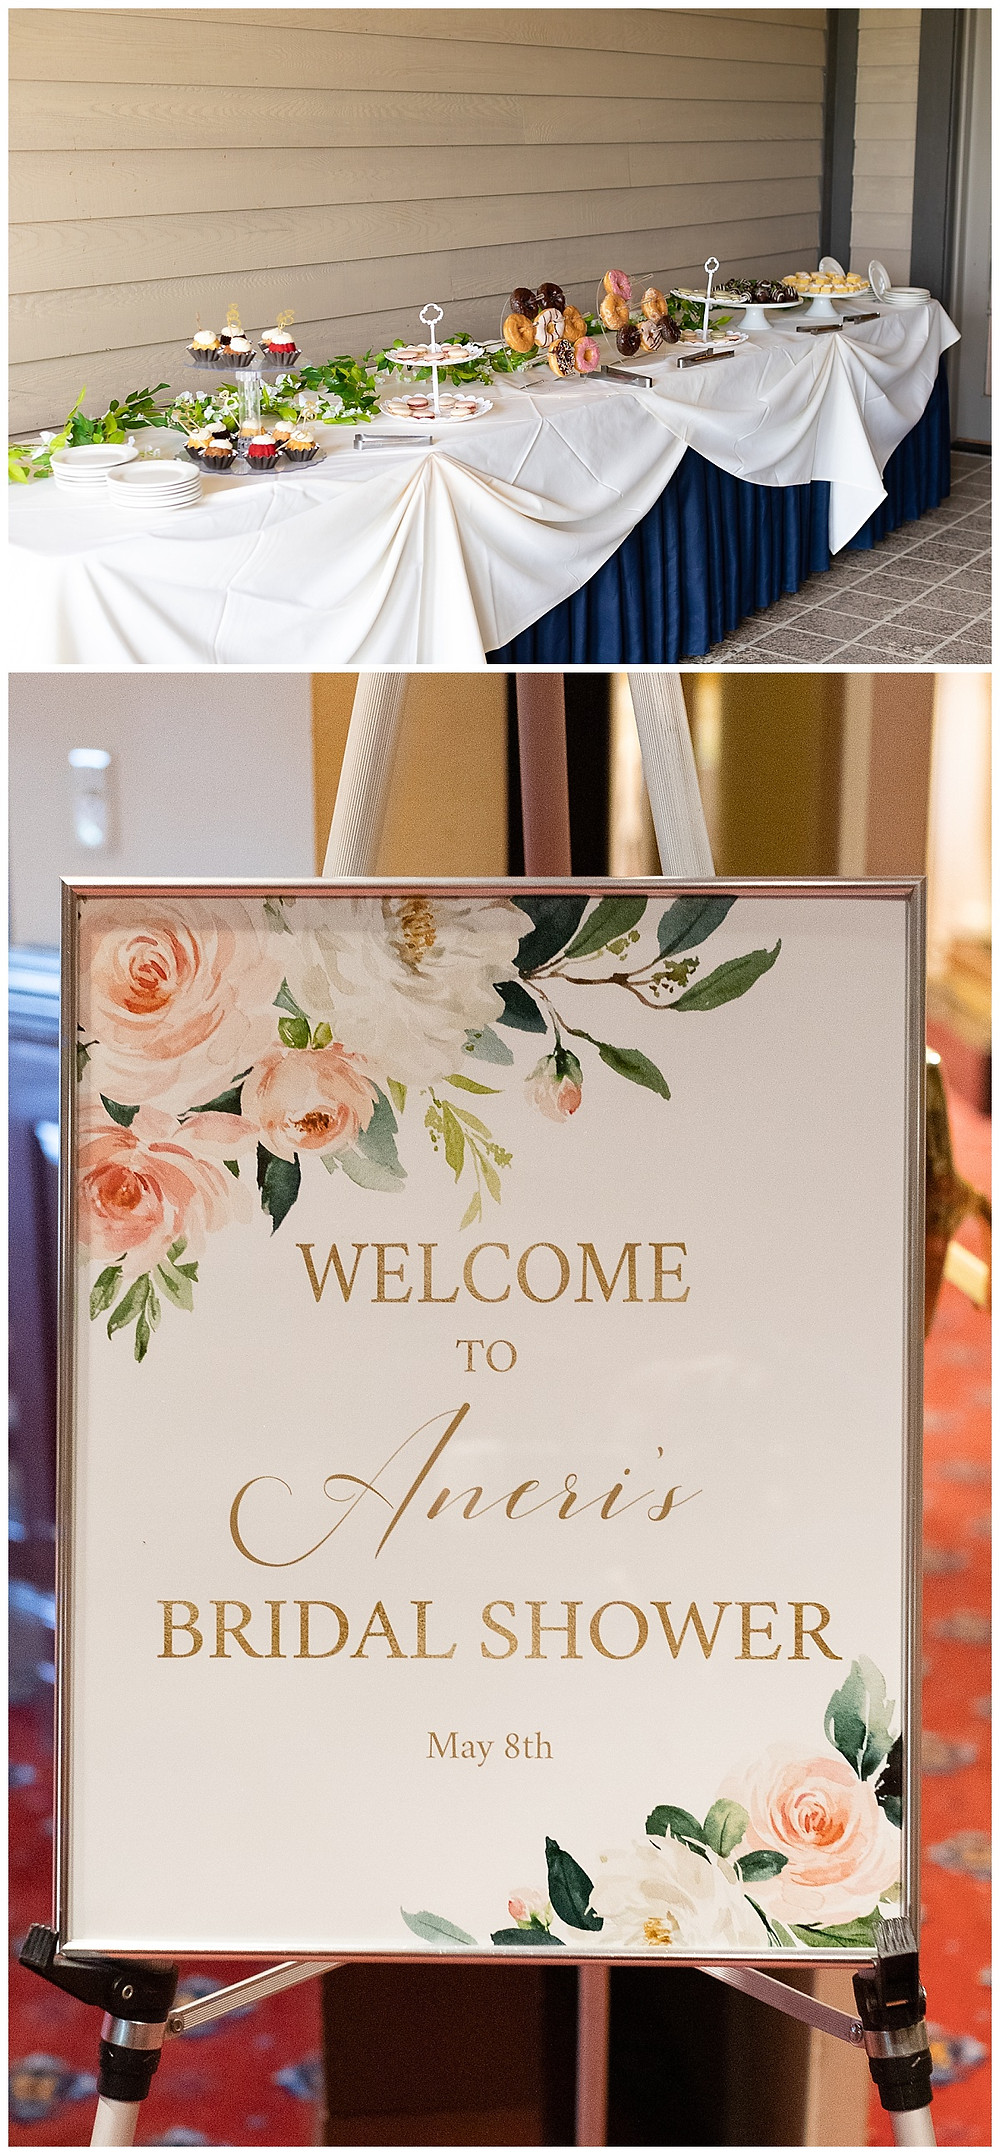 bridal shower sweets table, bridal shower welcome sign, blush, cream and gold florals